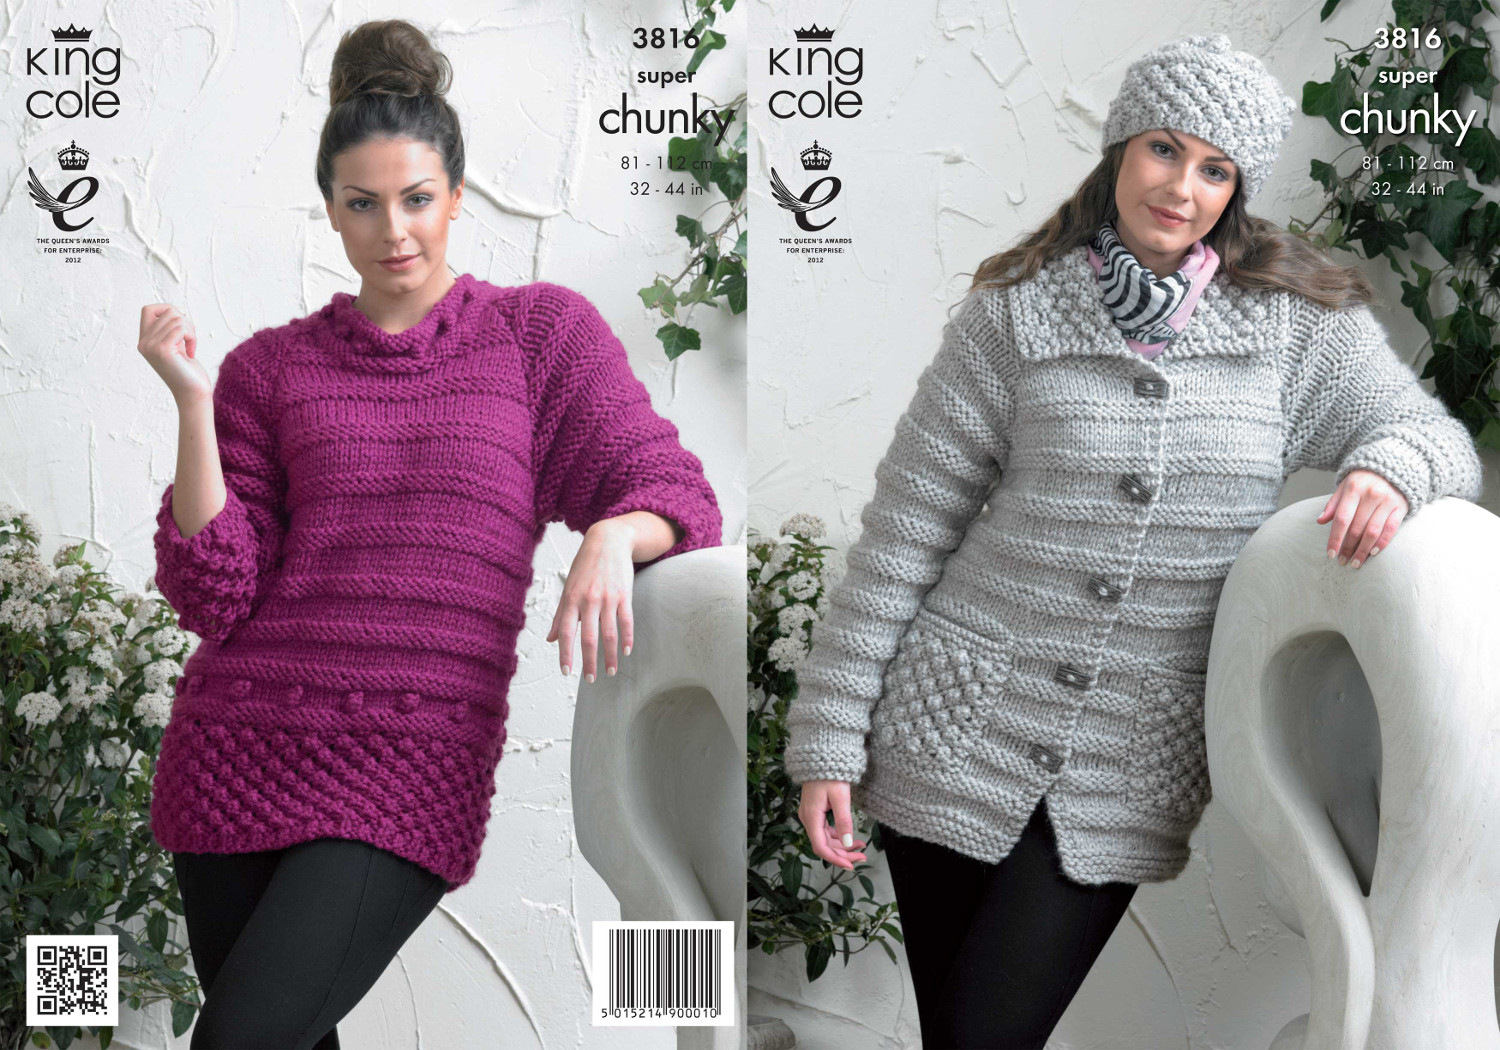 Knitting Patterns For Women Details About King Cole Ladies Knitting Pattern Womens Super Chunky Jacket Sweater Hat 3816